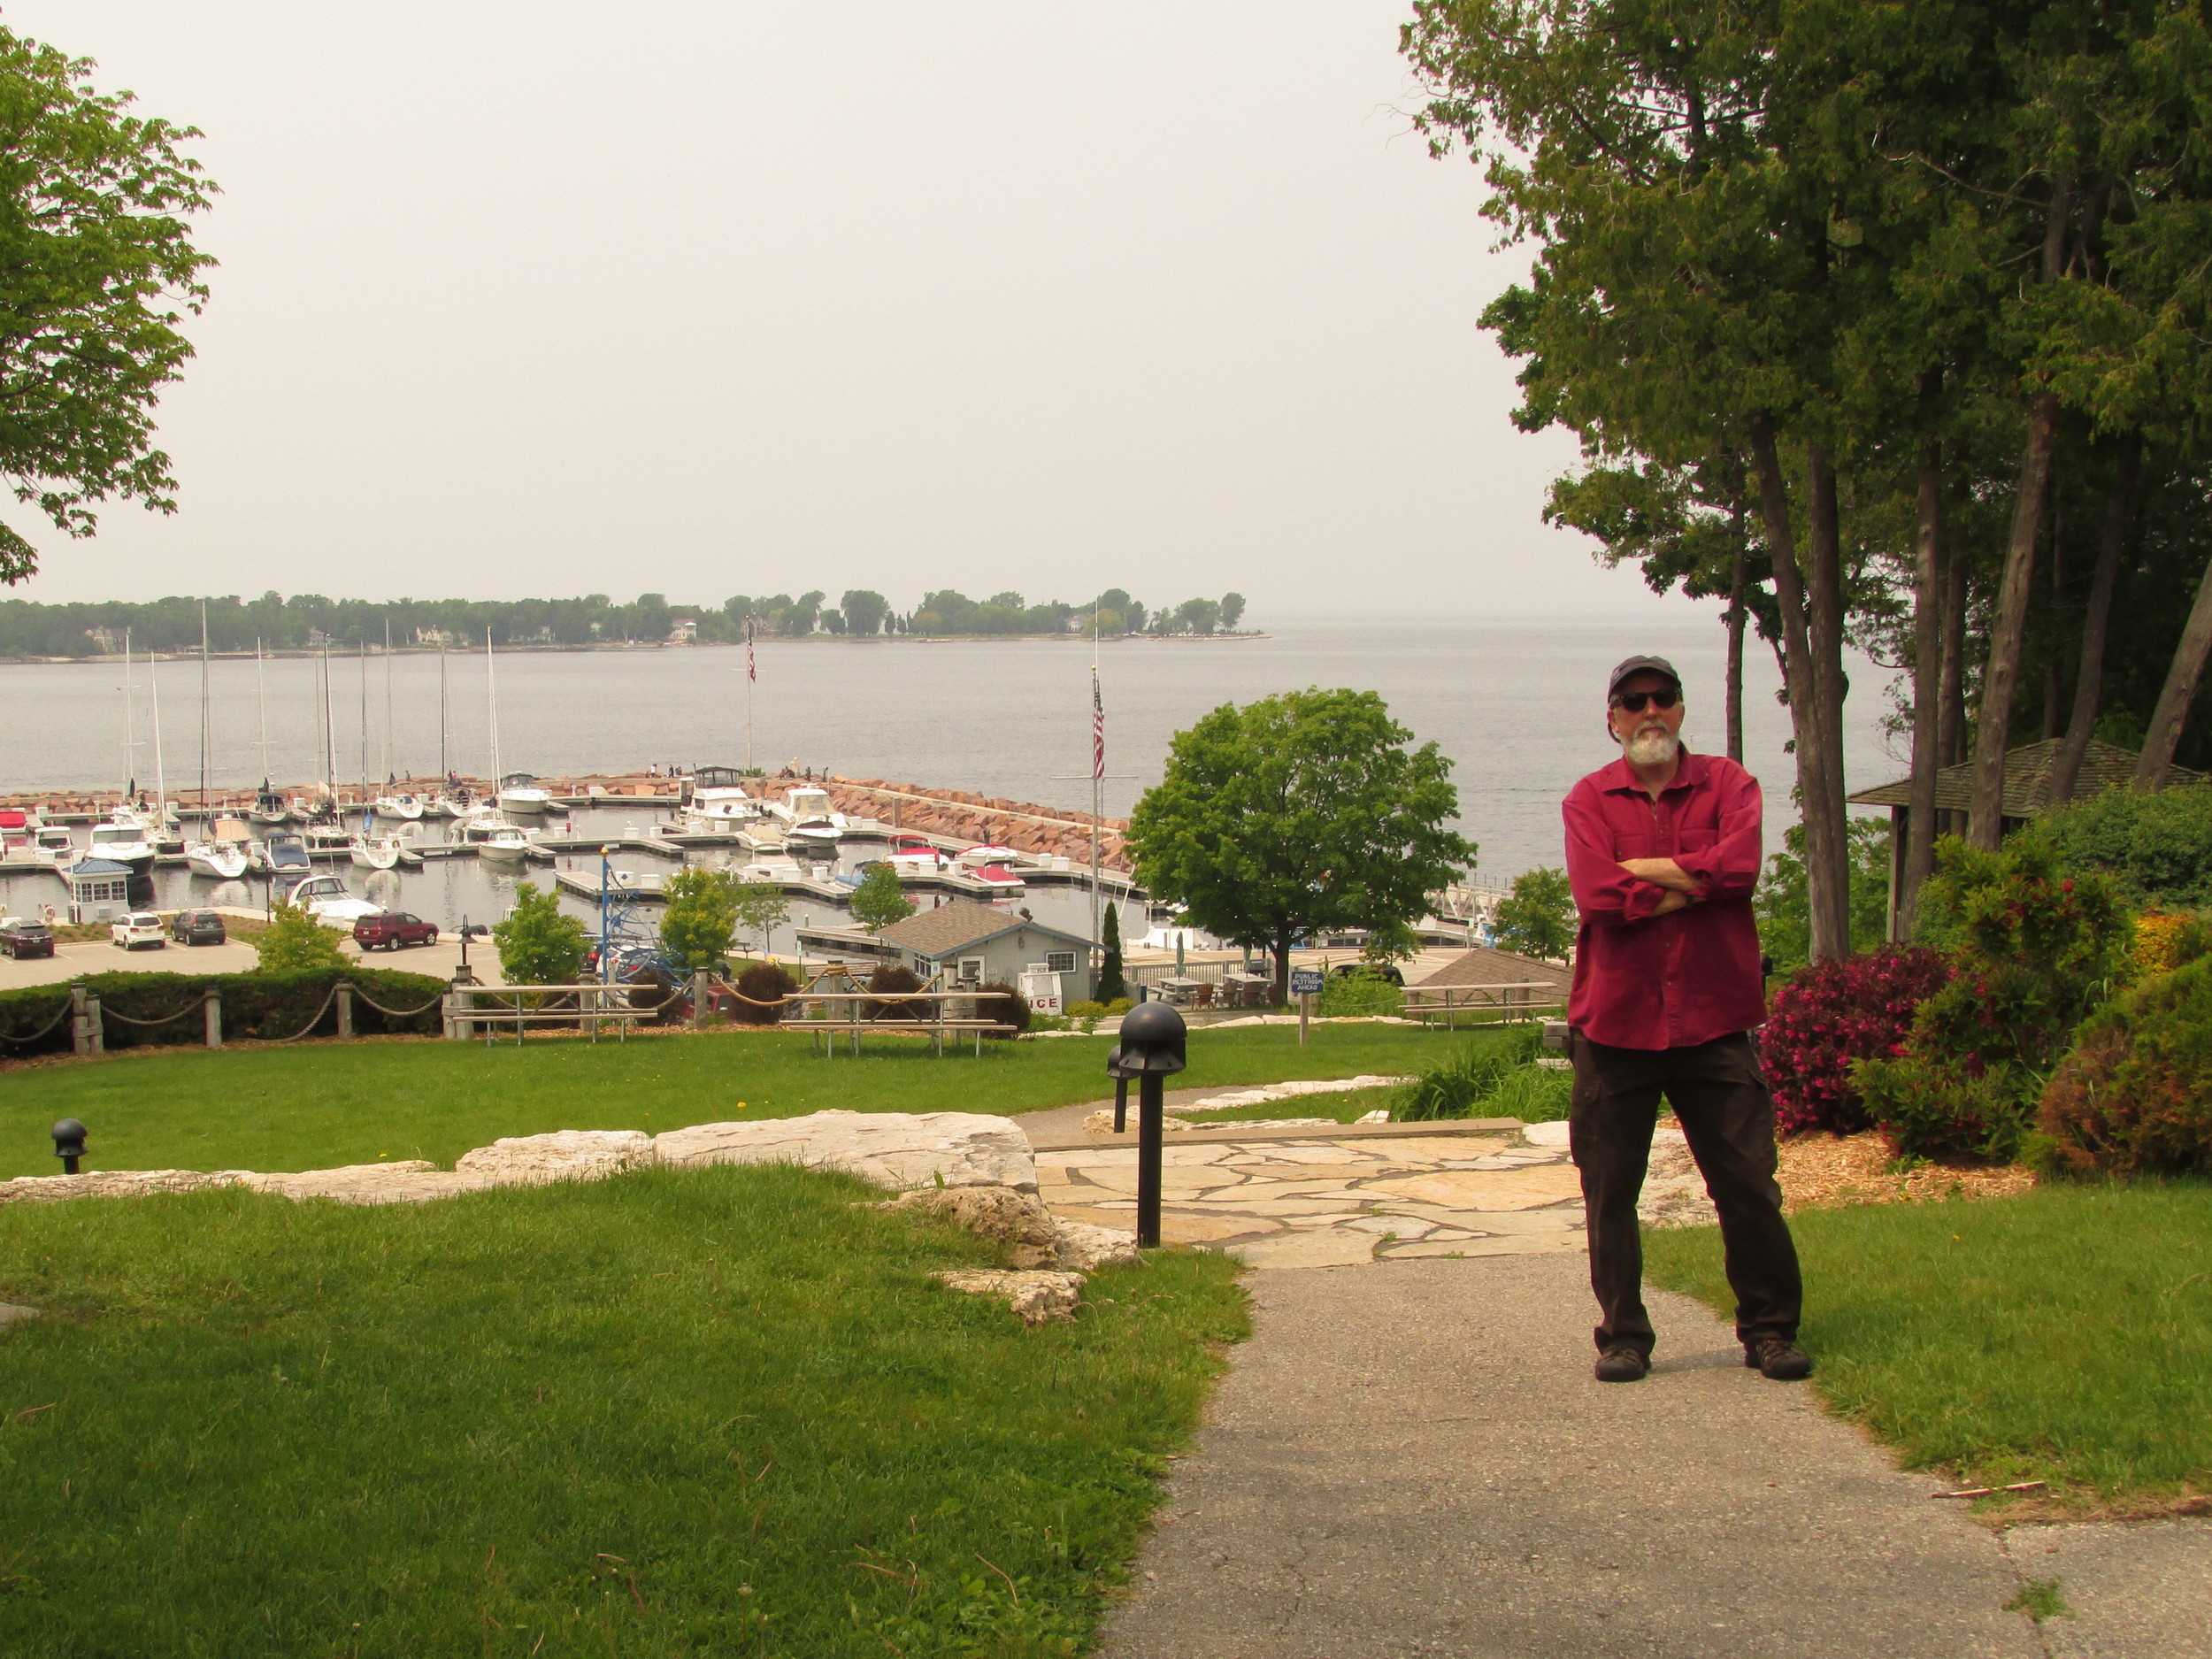 Wayne at Egg Harbor, Door County. Lots of small harbors and quaint villages.......and of course, boats.